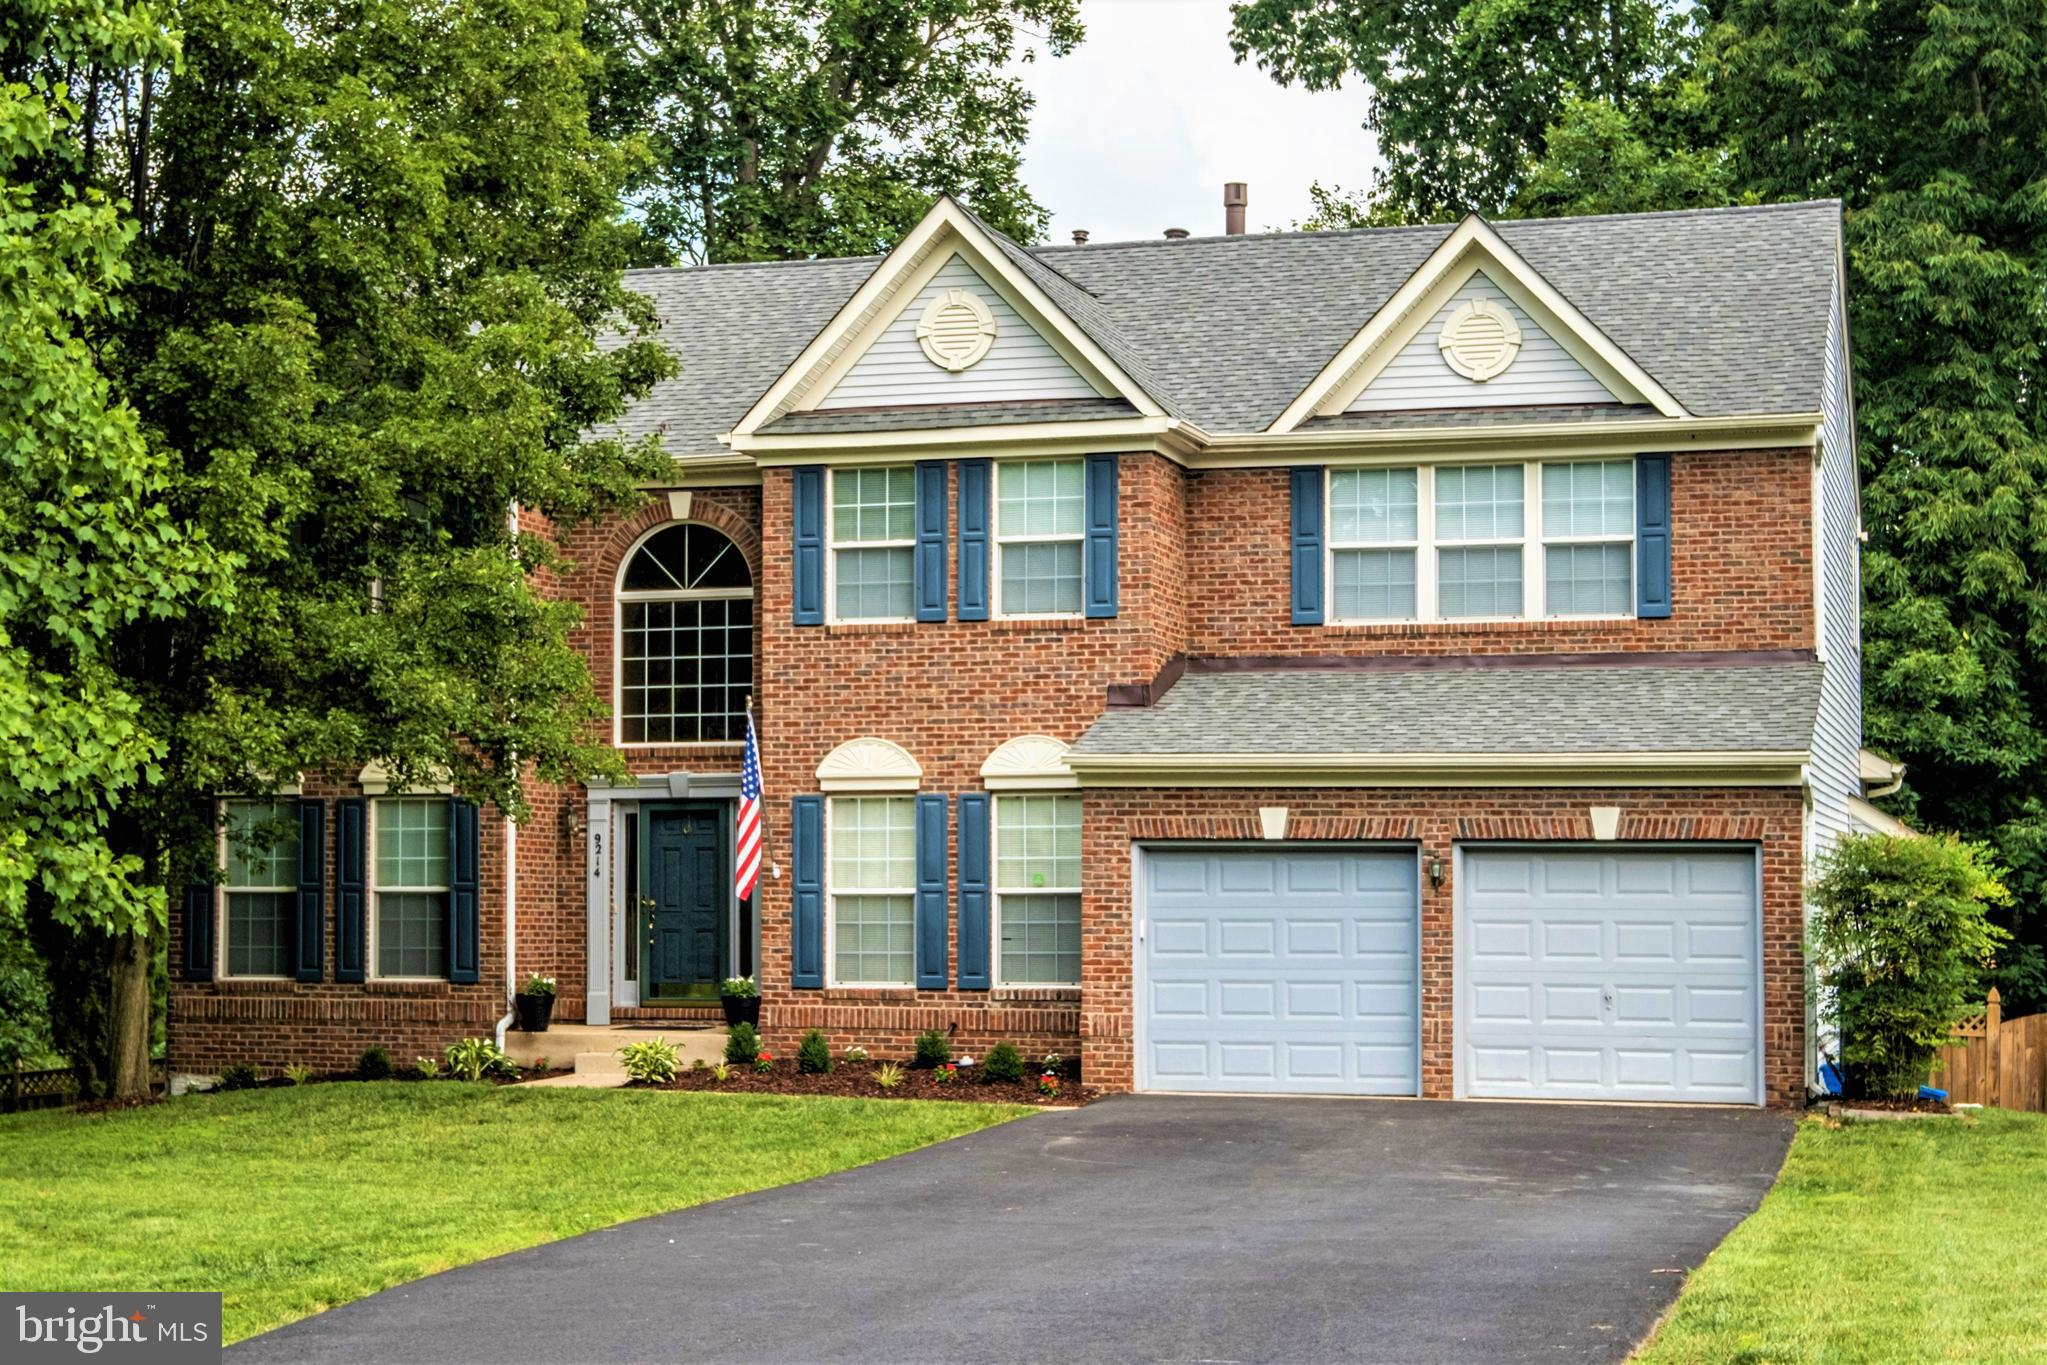 9214 FAIRWAY COURT, MANASSAS PARK, VA 20111